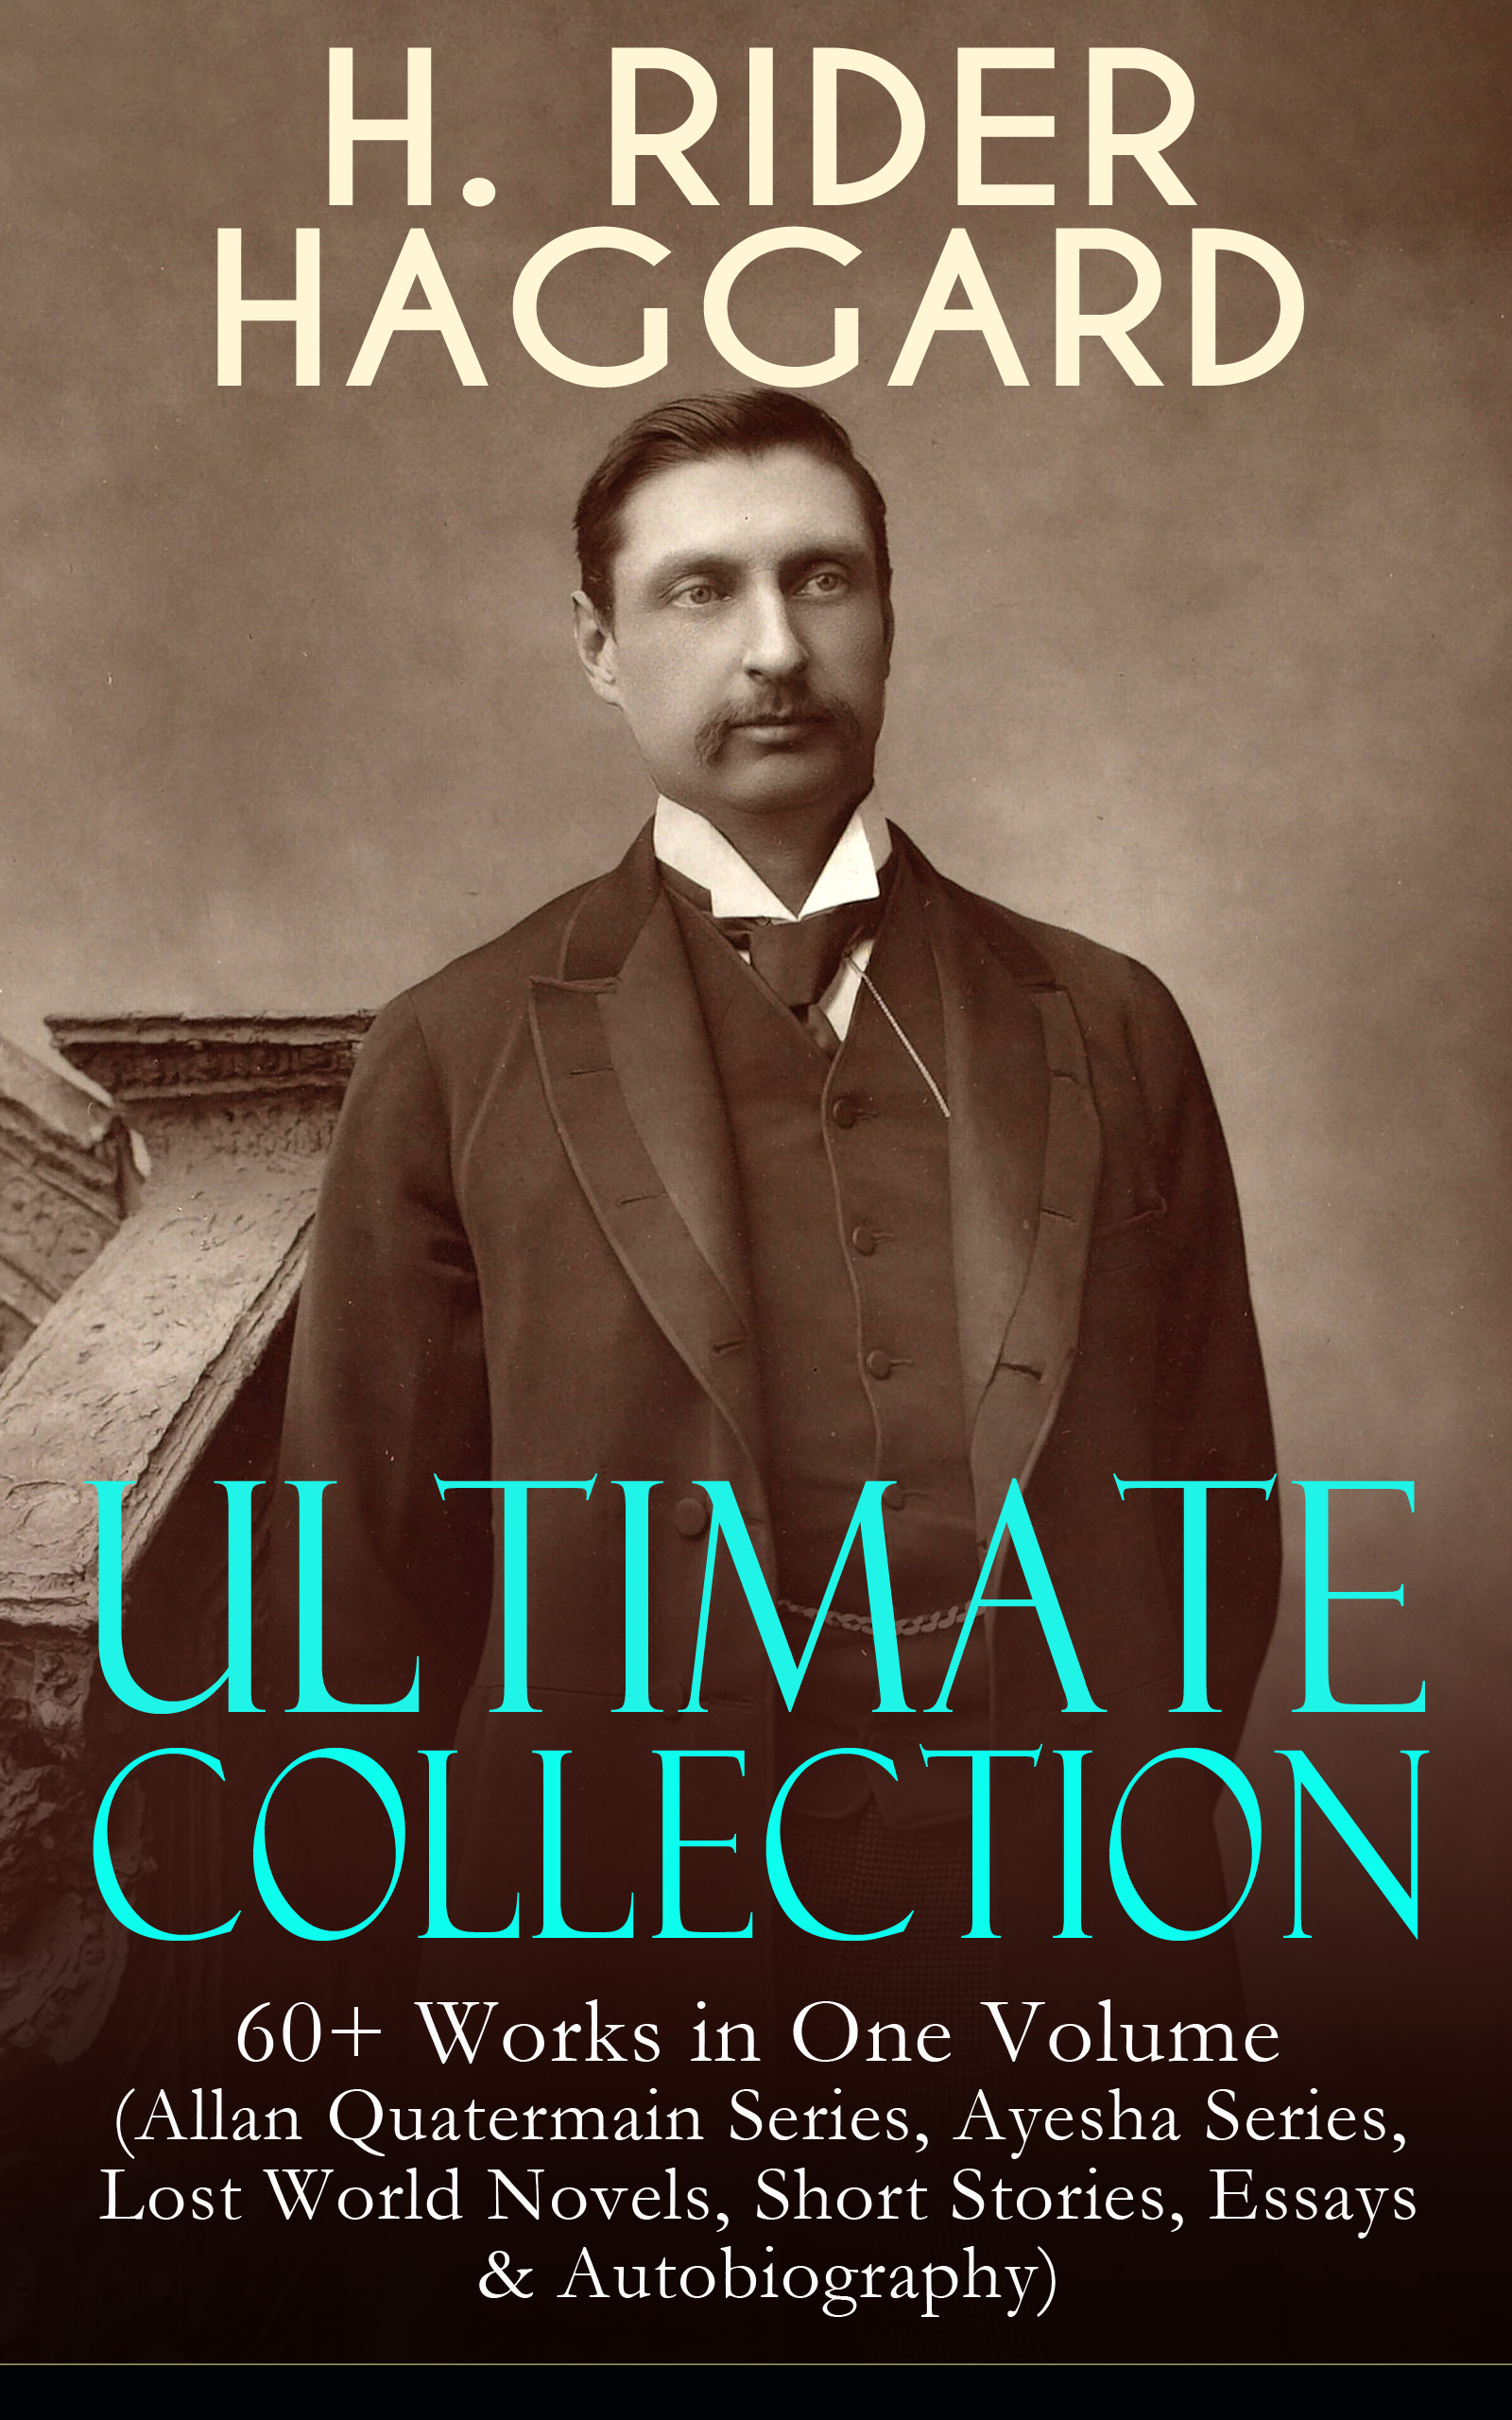 Henry Rider Haggard H. RIDER HAGGARD Ultimate Collection: 60+ Works in One Volume haggard henry rider queen sheba s ring